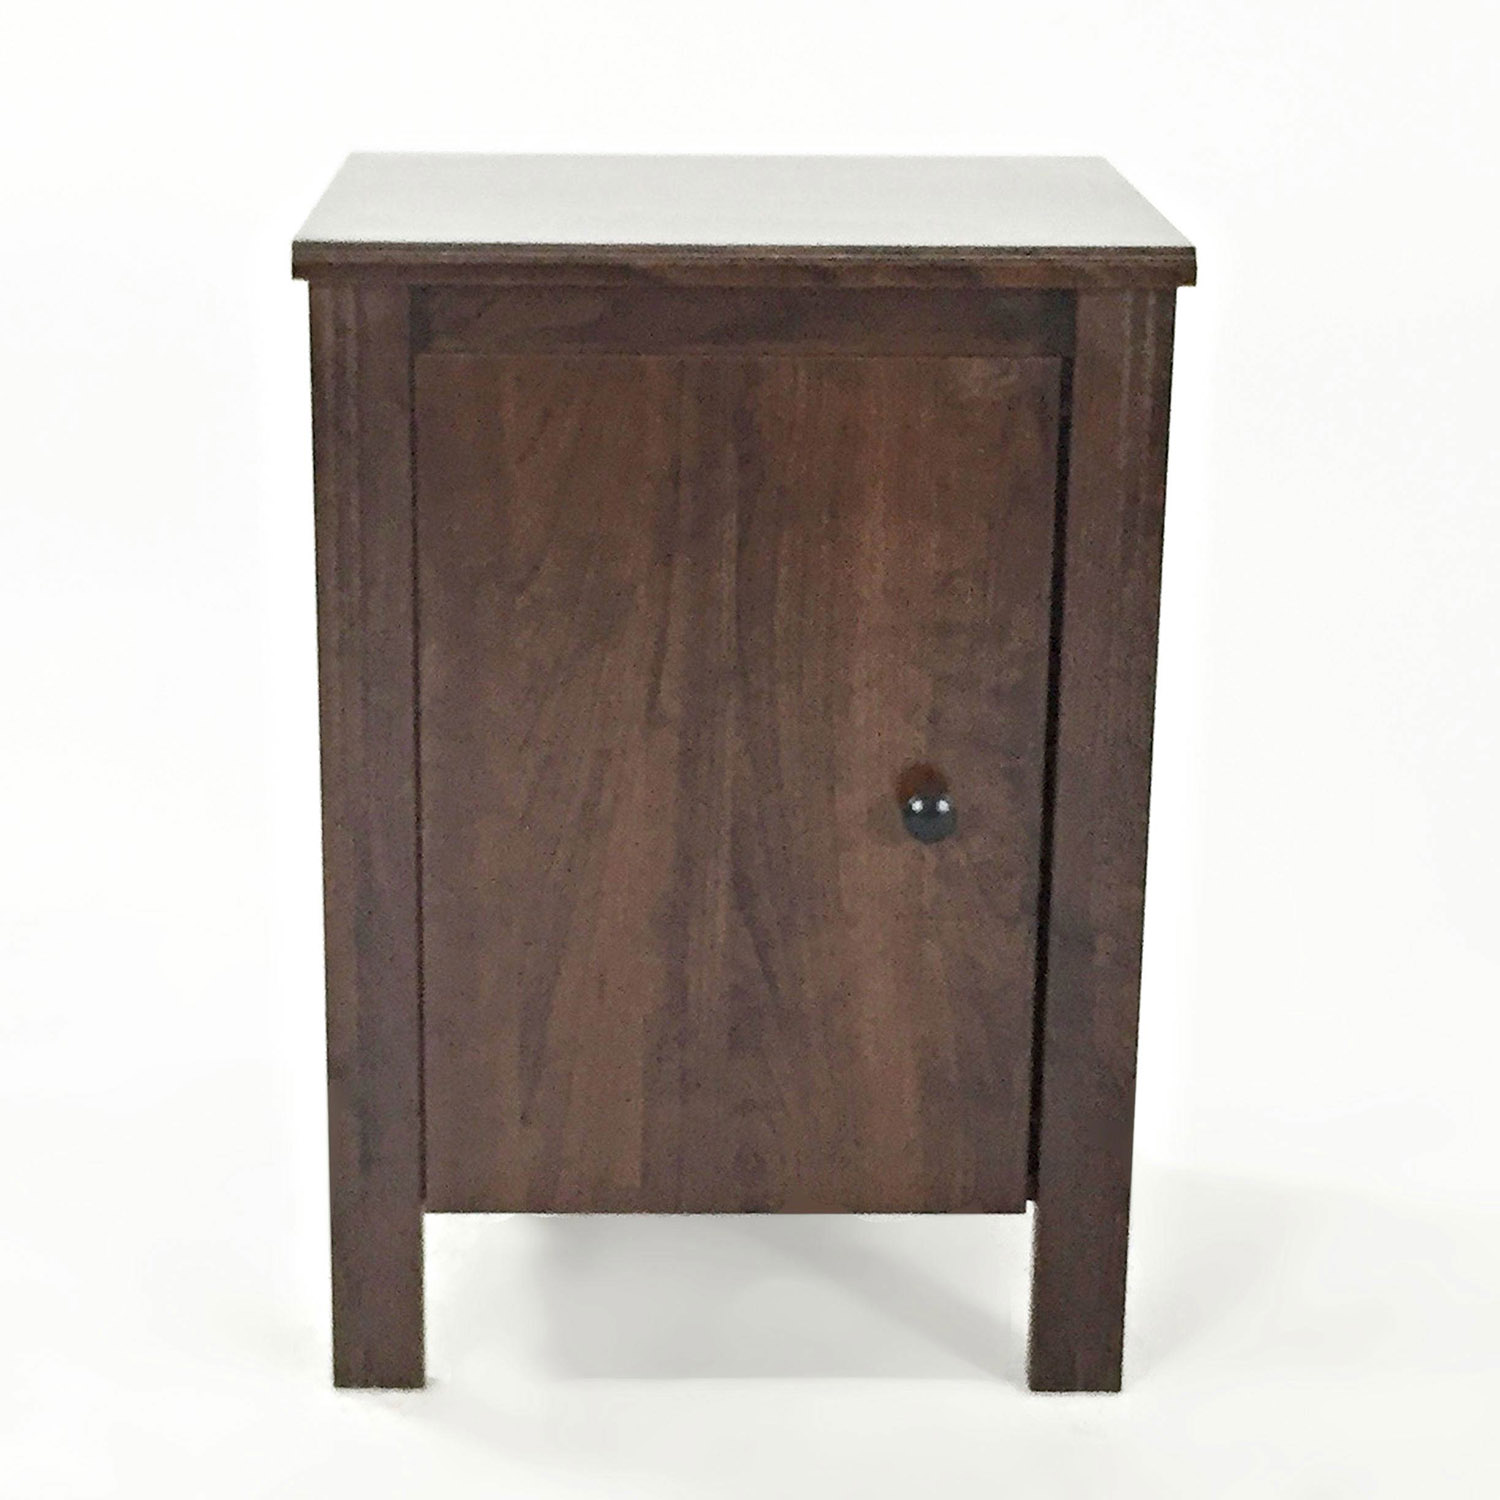 Small Tables Ikea 71 Off Ikea Small Night Stand Tables